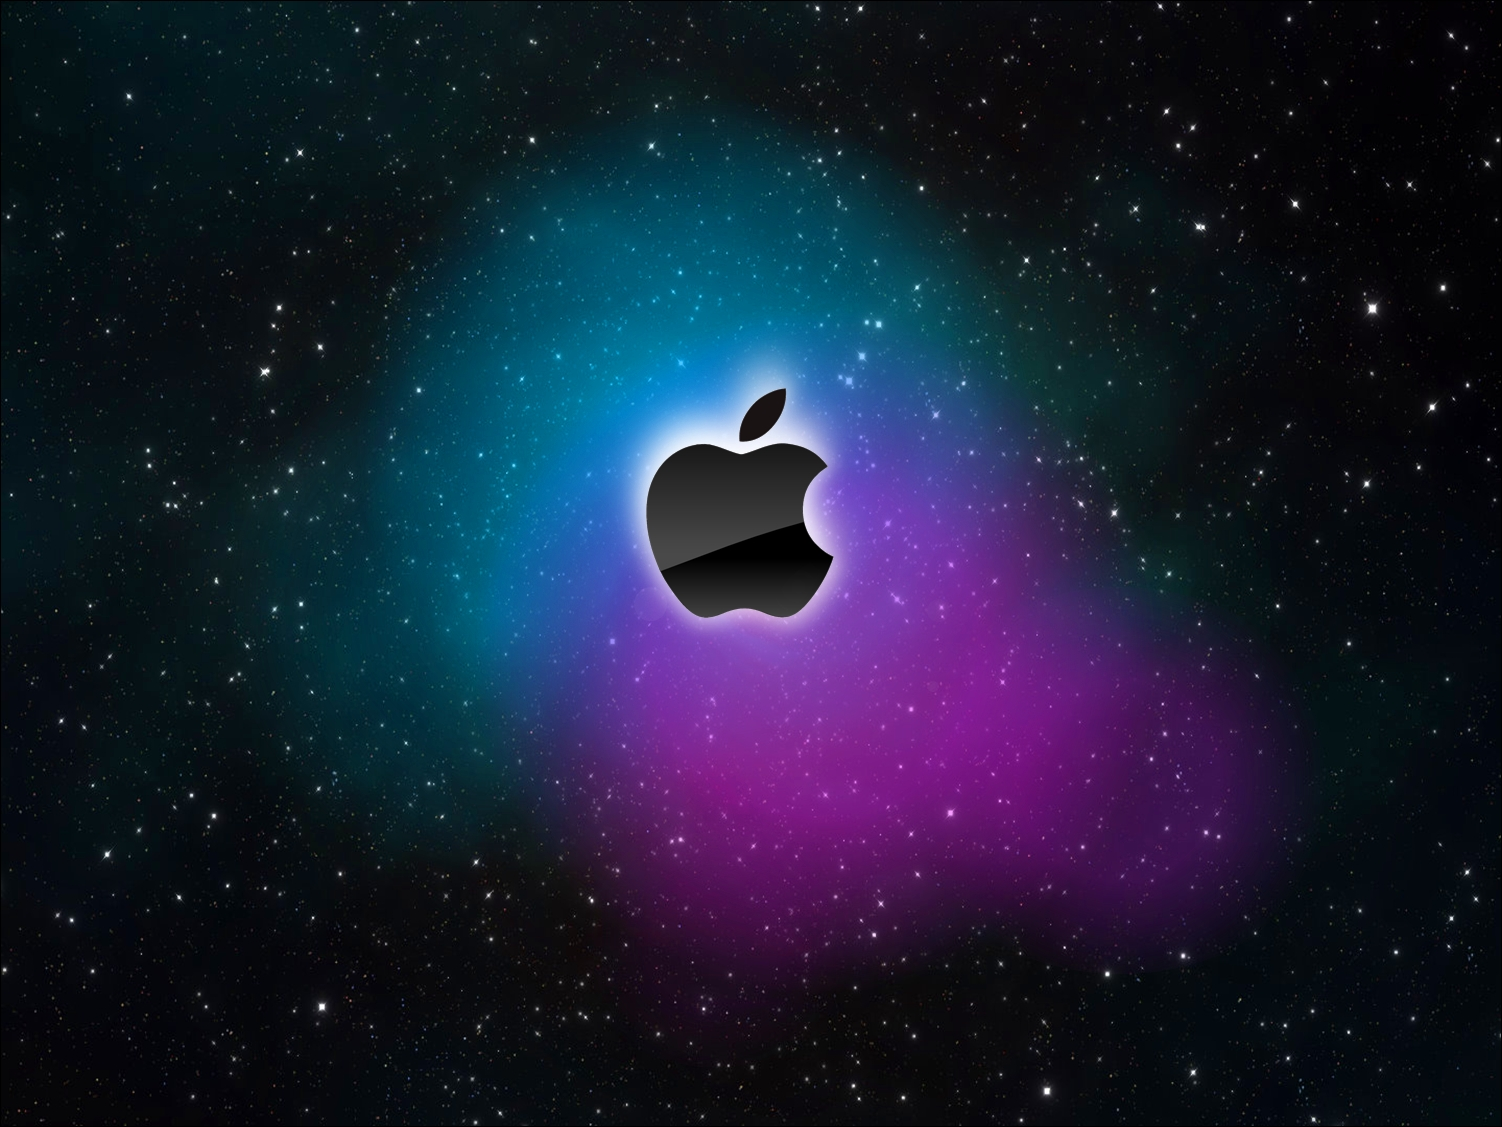 apple inc wallpaper - wallpaper apple galaxy wallpapers - hd